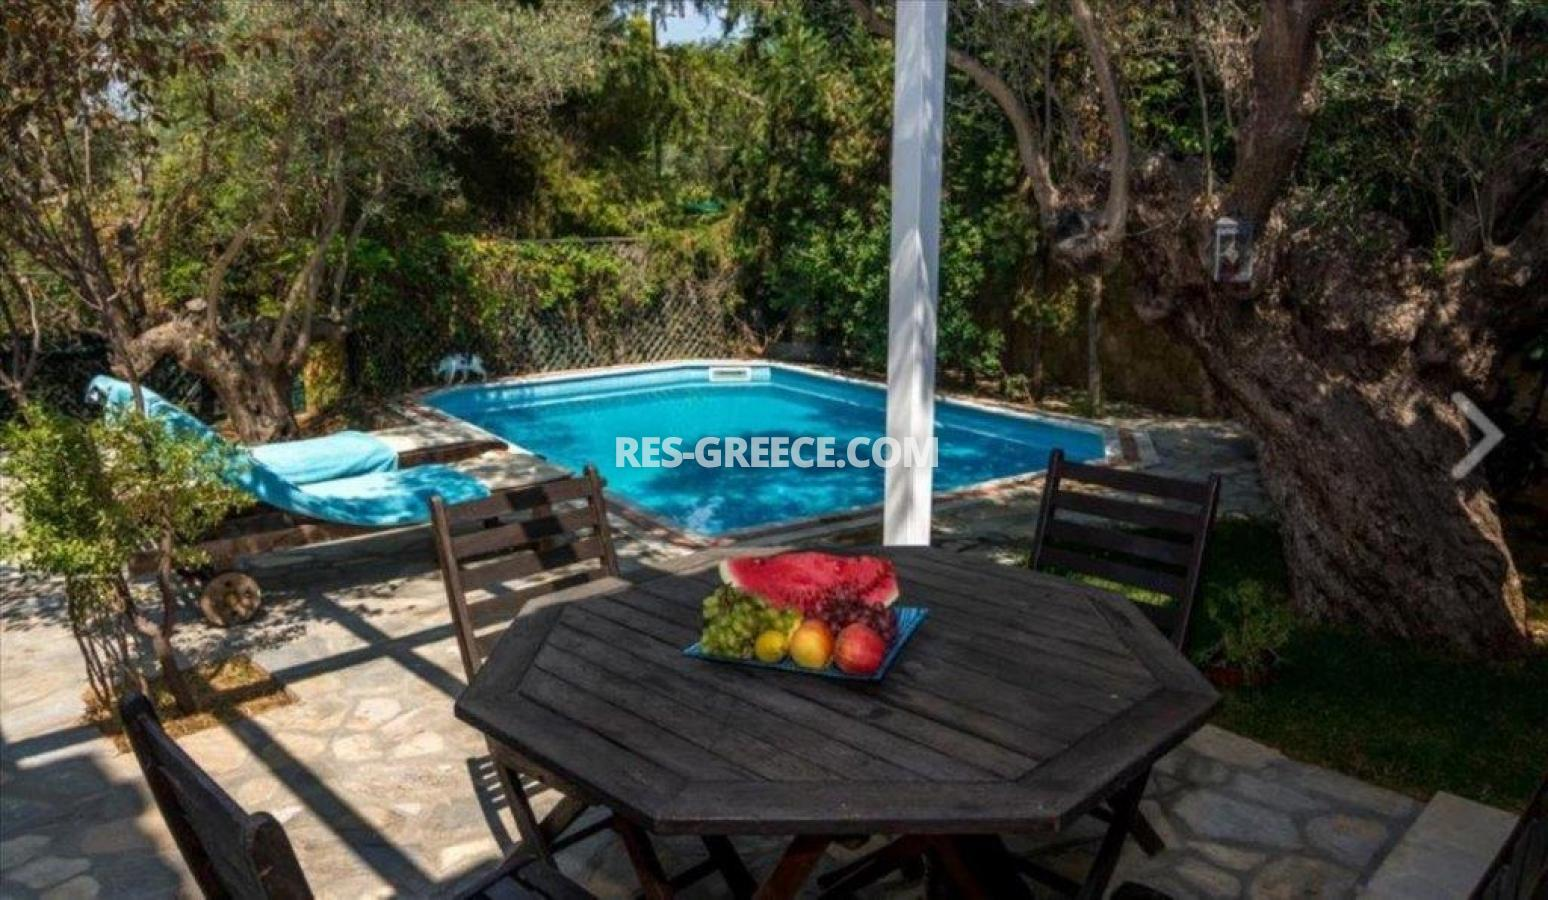 Ilectra, Halkidiki-Sithonia, Greece - cozy cottage with a pool by the sea - Photo 6